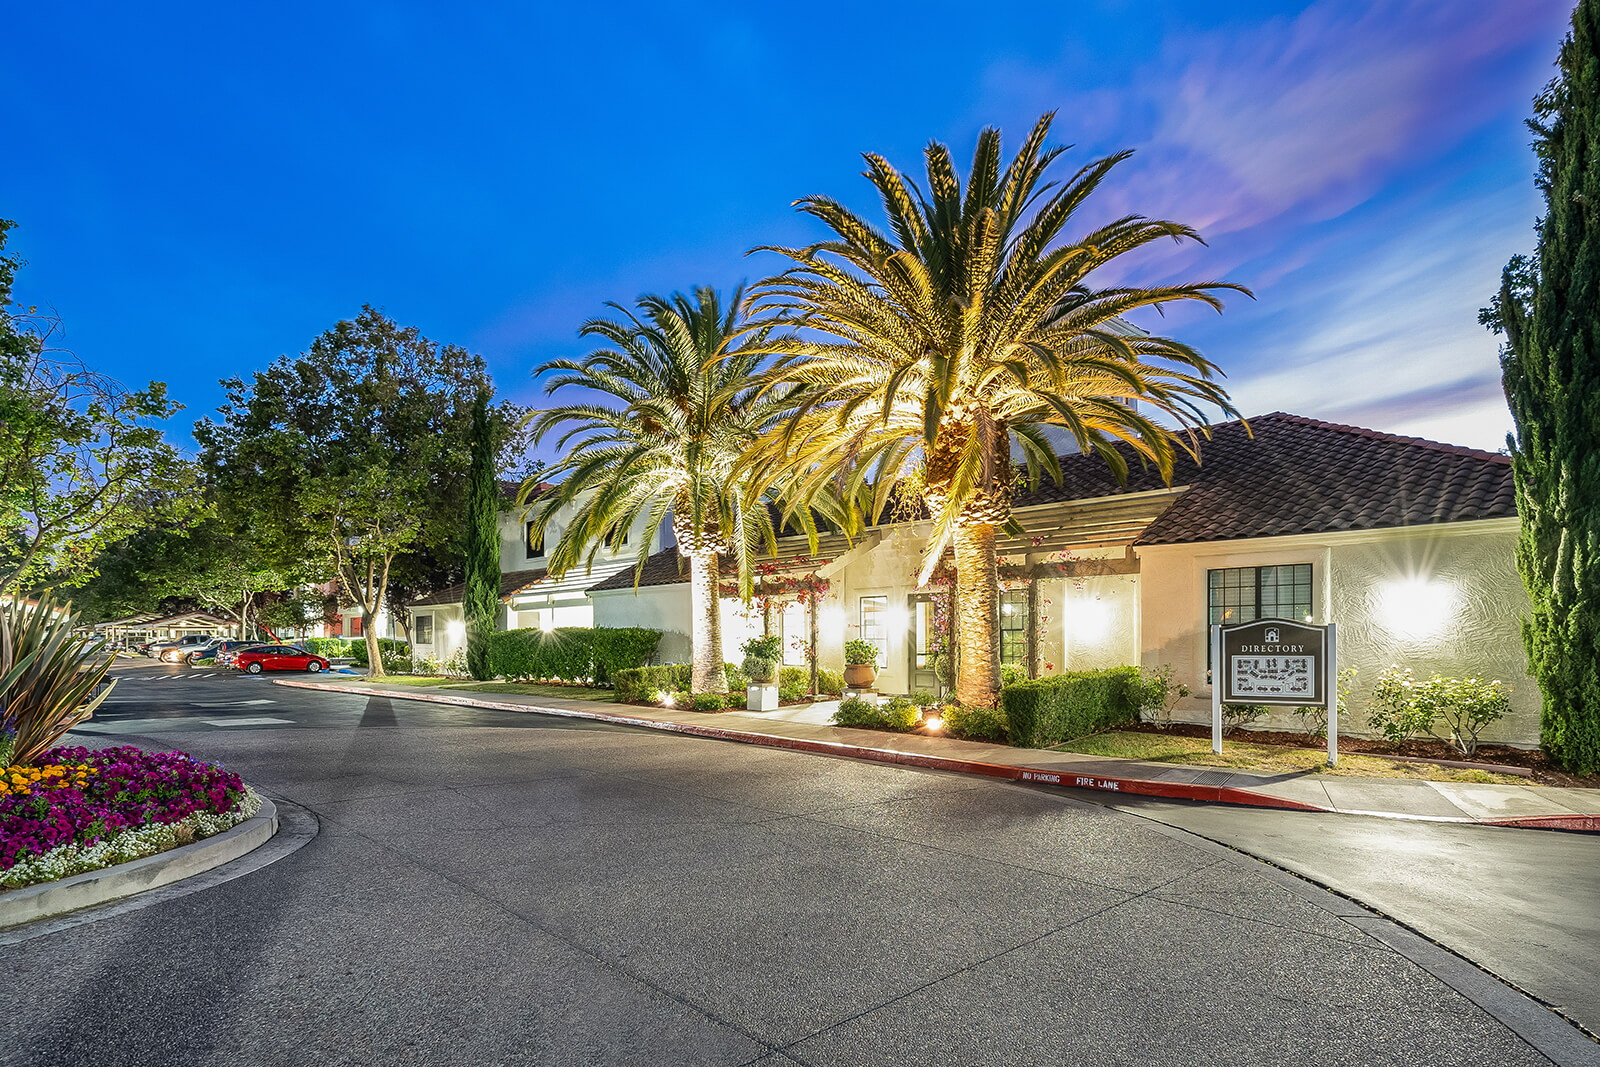 103 Apartments For Rent Under 3000 In Sunnyvale Ca